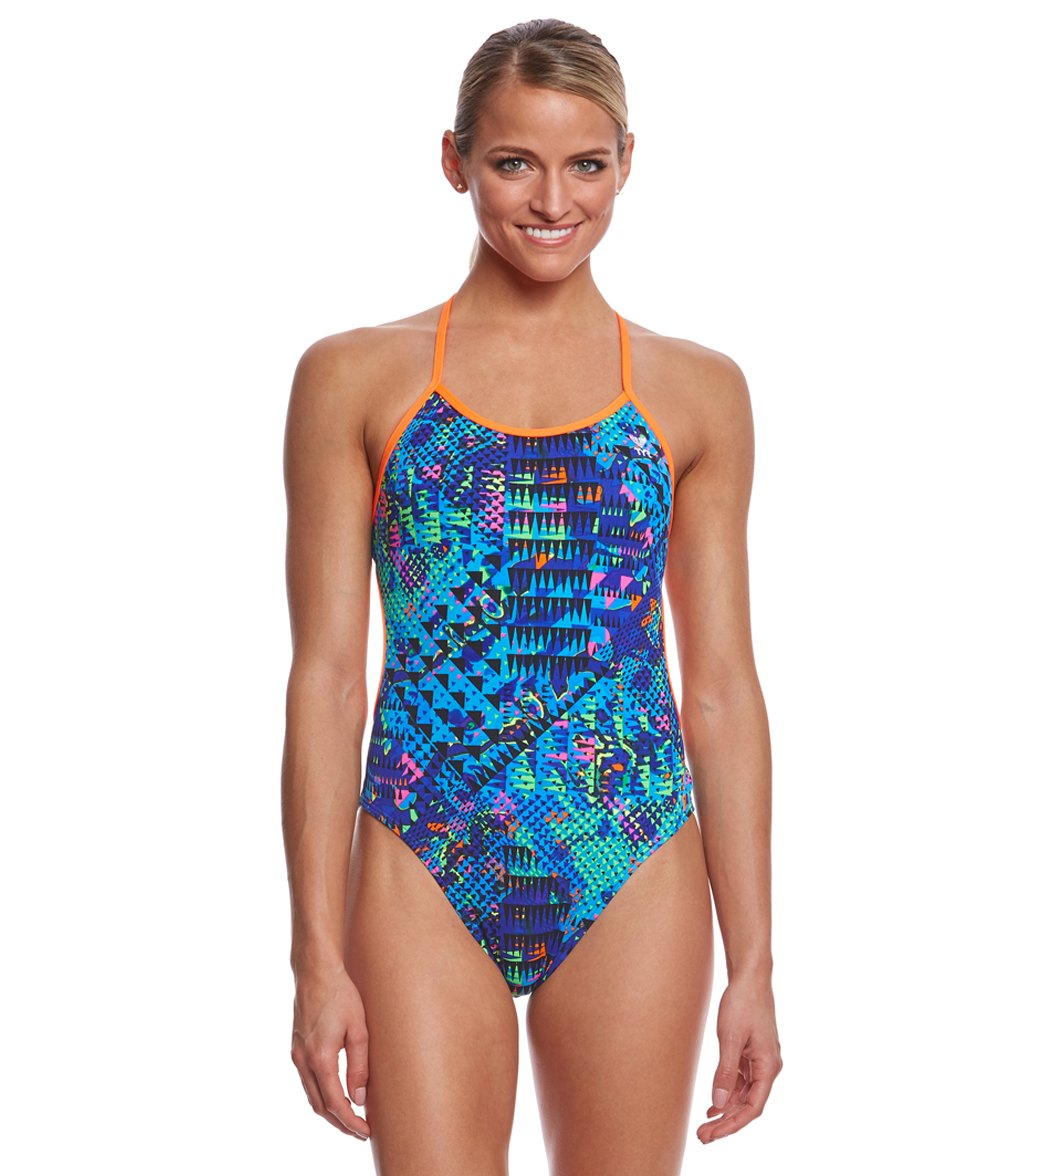 96350cd3b26aa TYR Women s Machu Crosscutfit Tieback One Piece Swimsuit at SwimOutlet.com  - Free Shipping